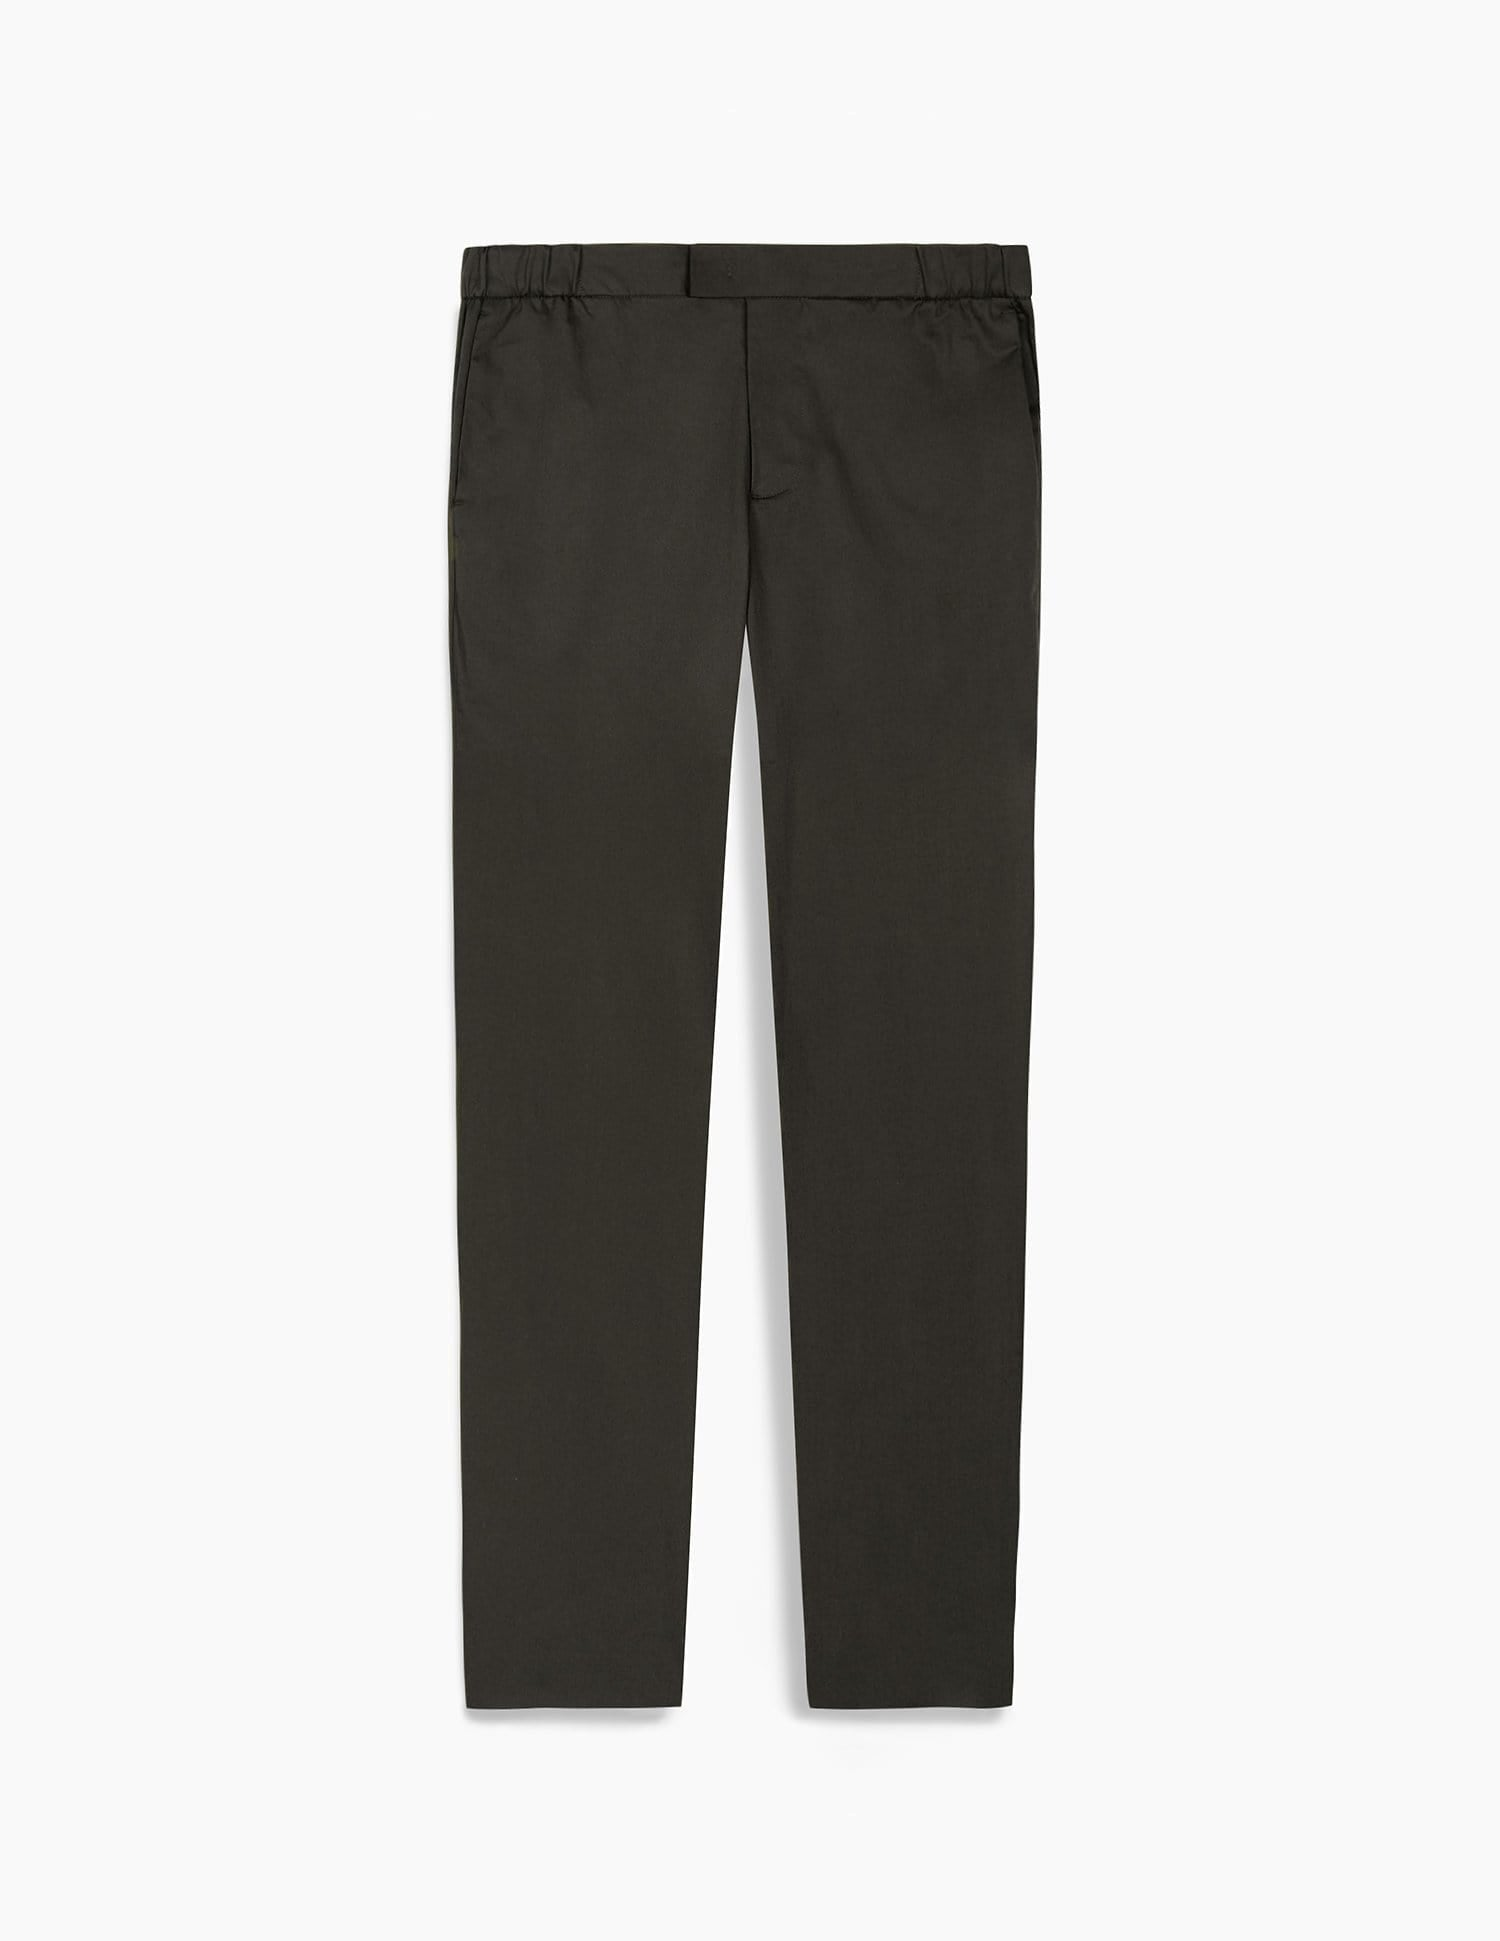 The 24 Trouser || Green Slate | Stretch Cotton